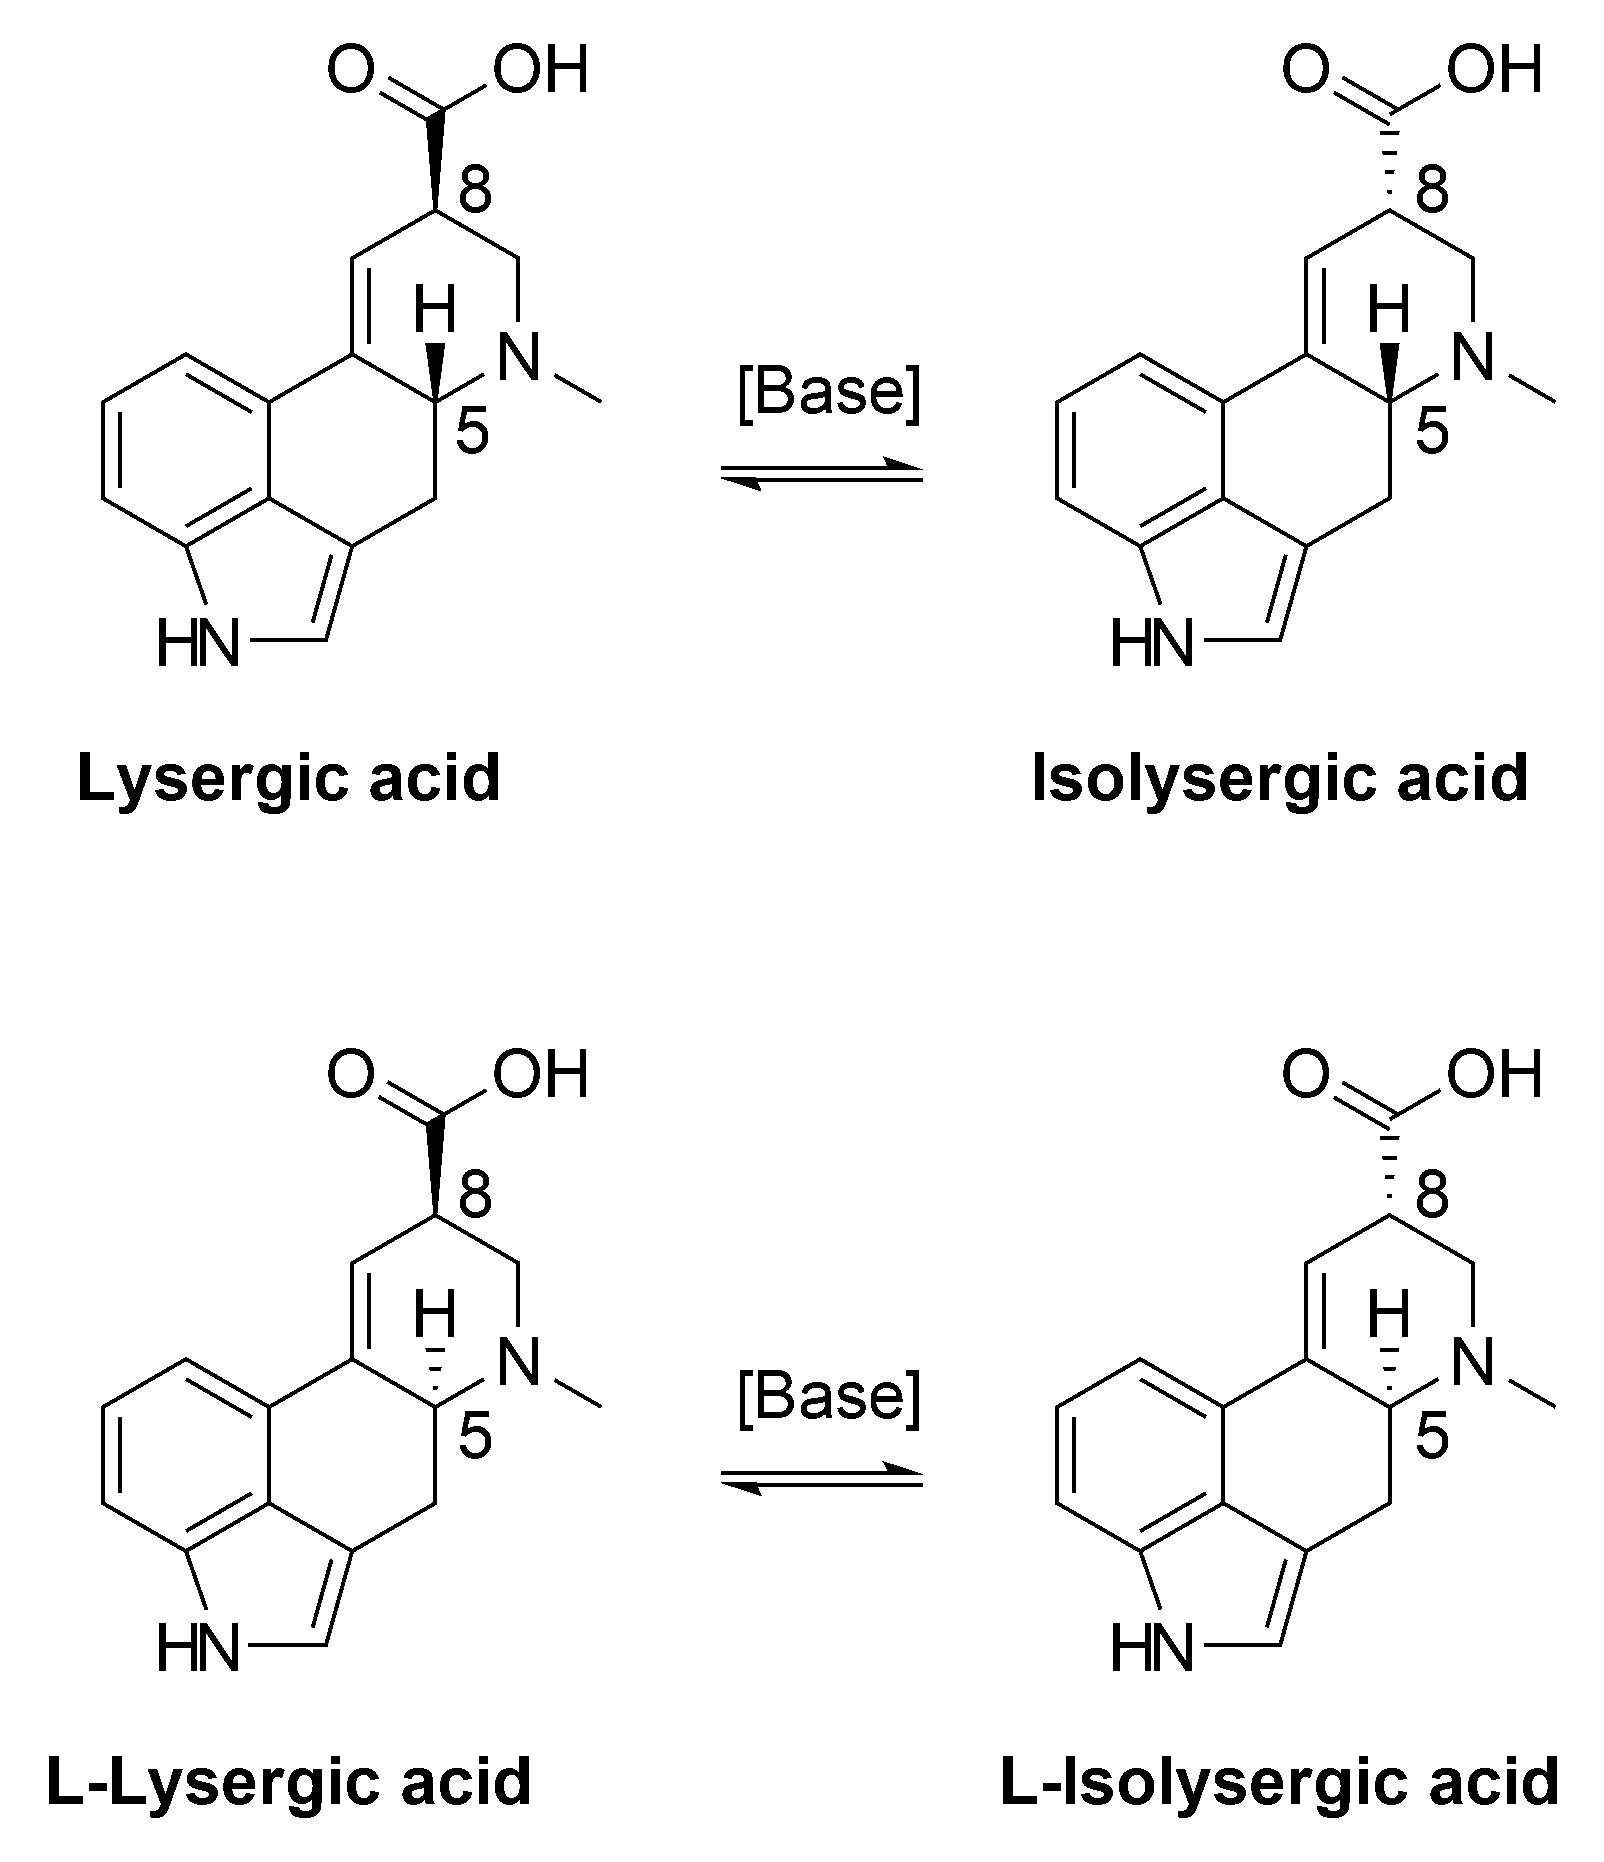 lysergic acid diethylamide analysis Lsd (lysergic acid diethylamide) information from drugscom, includes side effects, hazards and extent of usage.